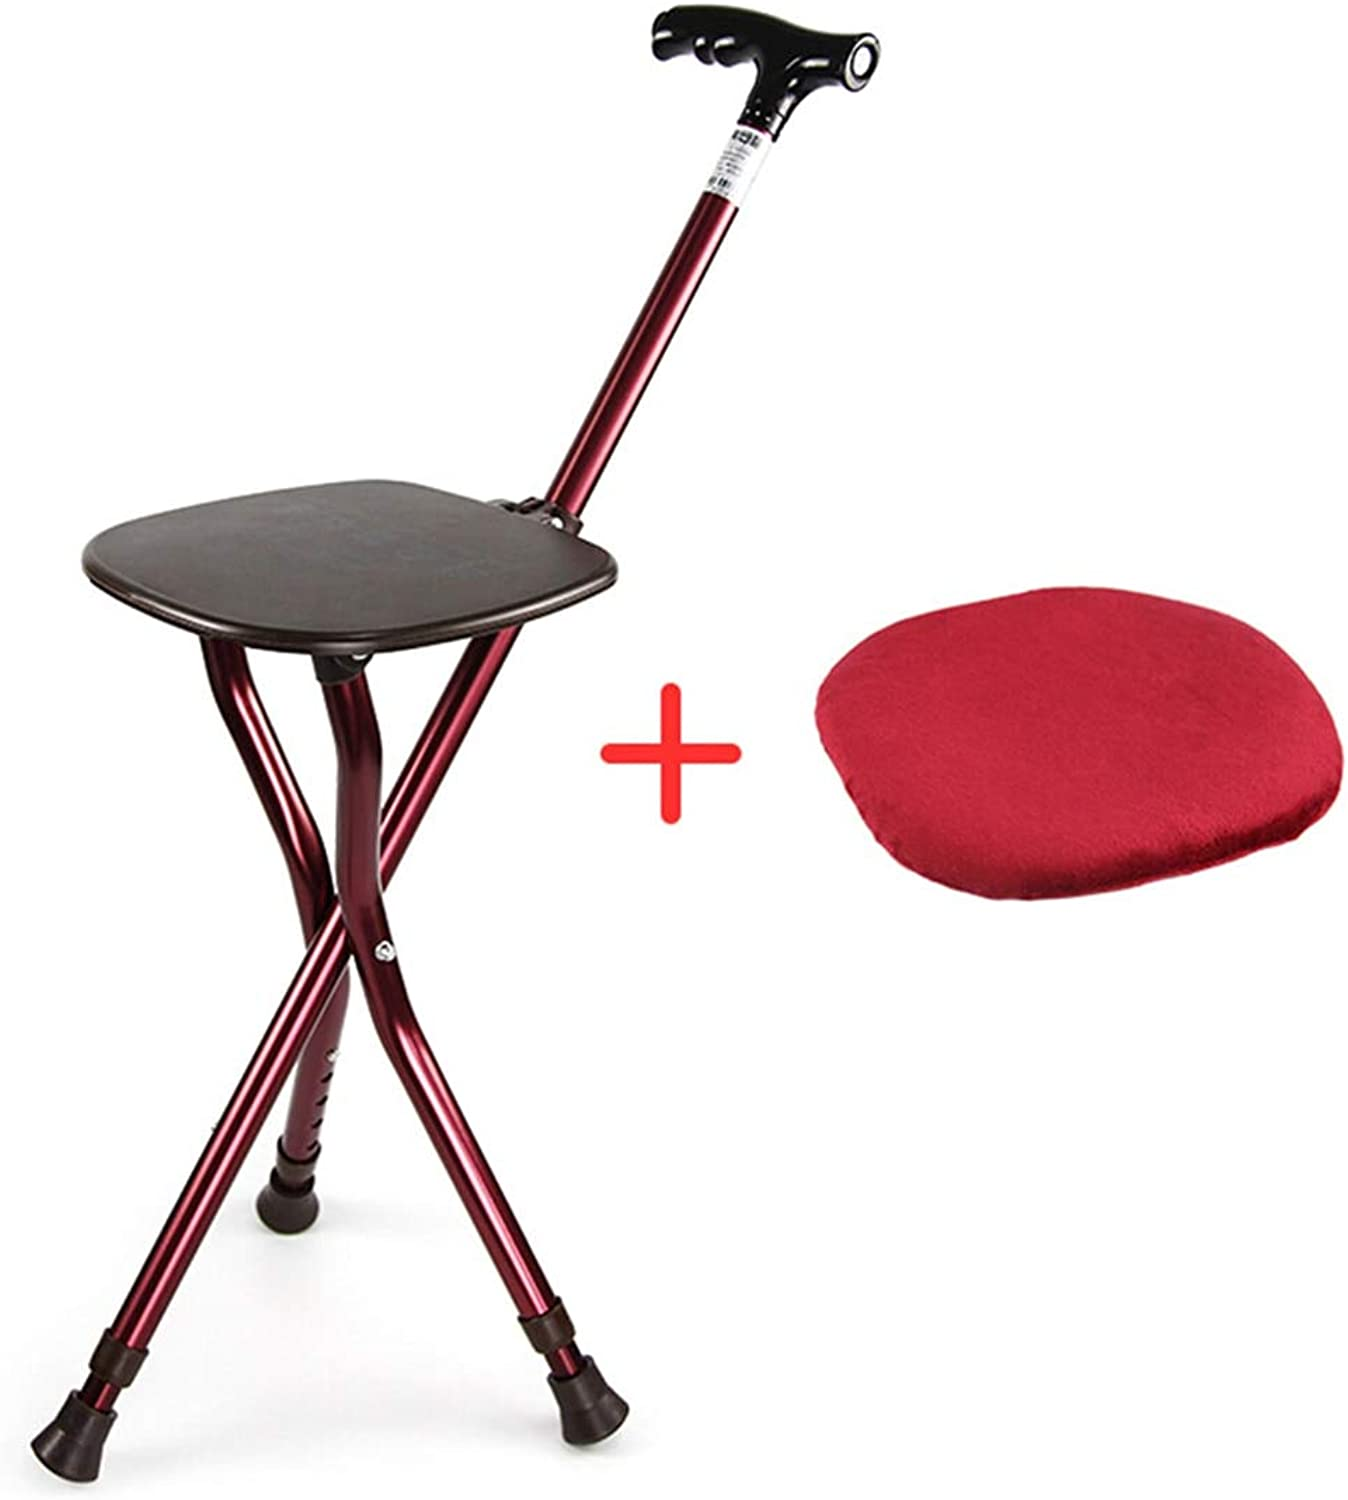 Senior Care Walking Cane Adjustable Folding Stick Massage Stool Portable Chair Fishing Rest LED Light for Elder Max Weight 440 lbs Combo Crutches Aluminum Alloy